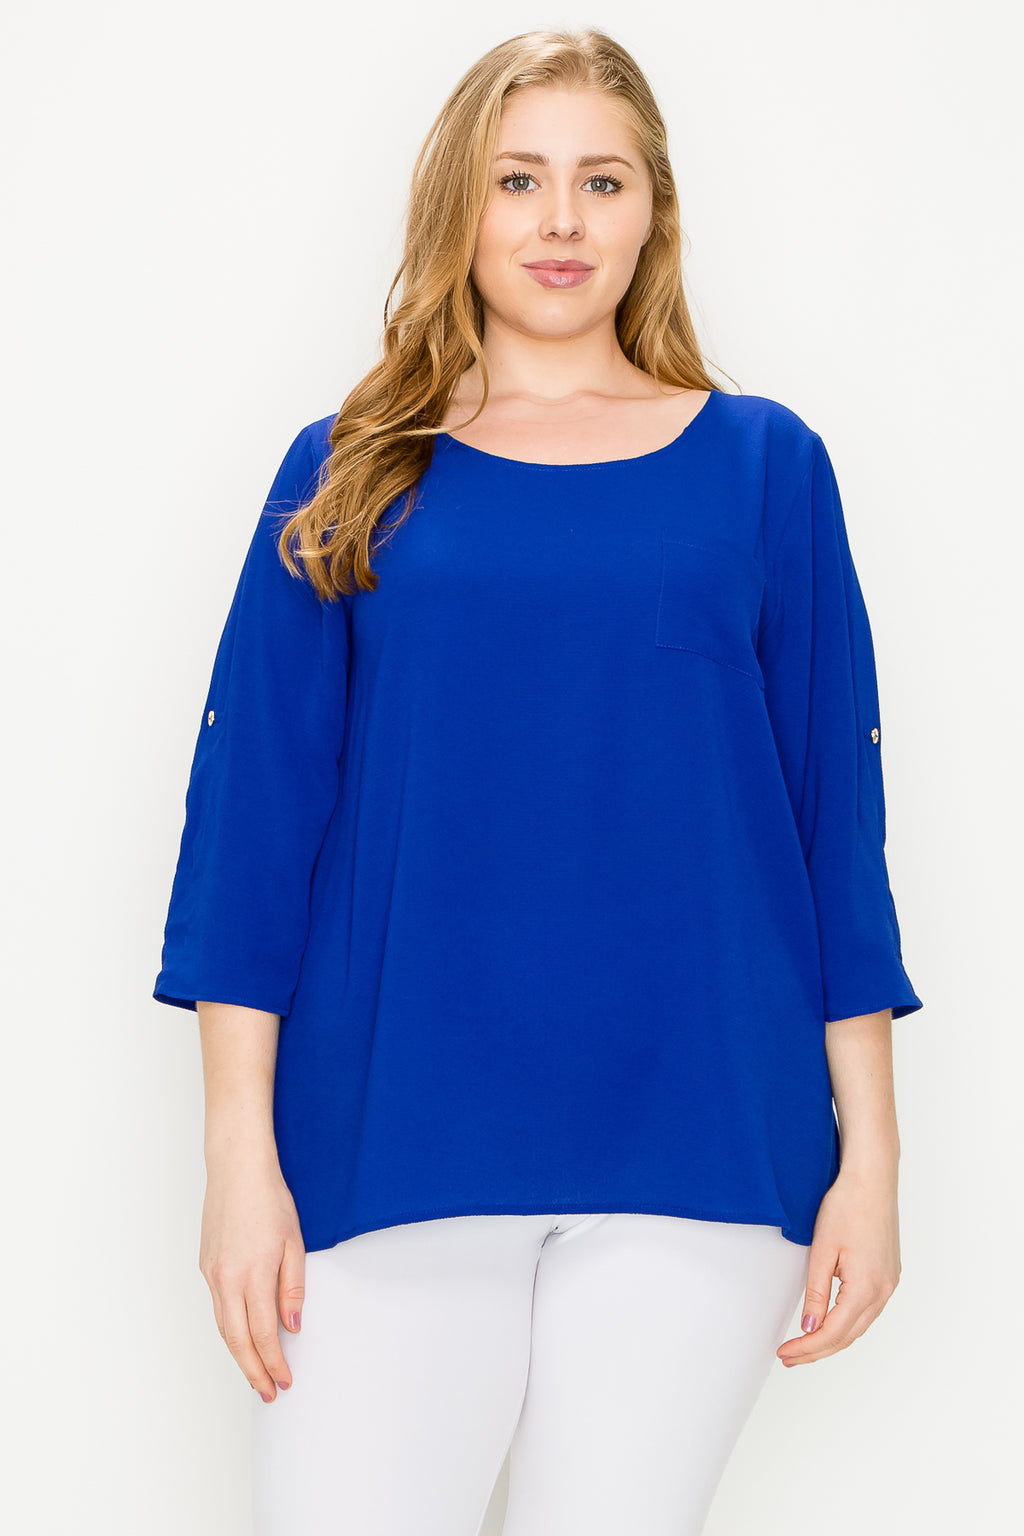 Women's Plus Size Tunic Blouse - Casual Roll Up 3/4 Sleeve Scoop Neck Side Slit Chiffon Shirt Tops Work Office Wear